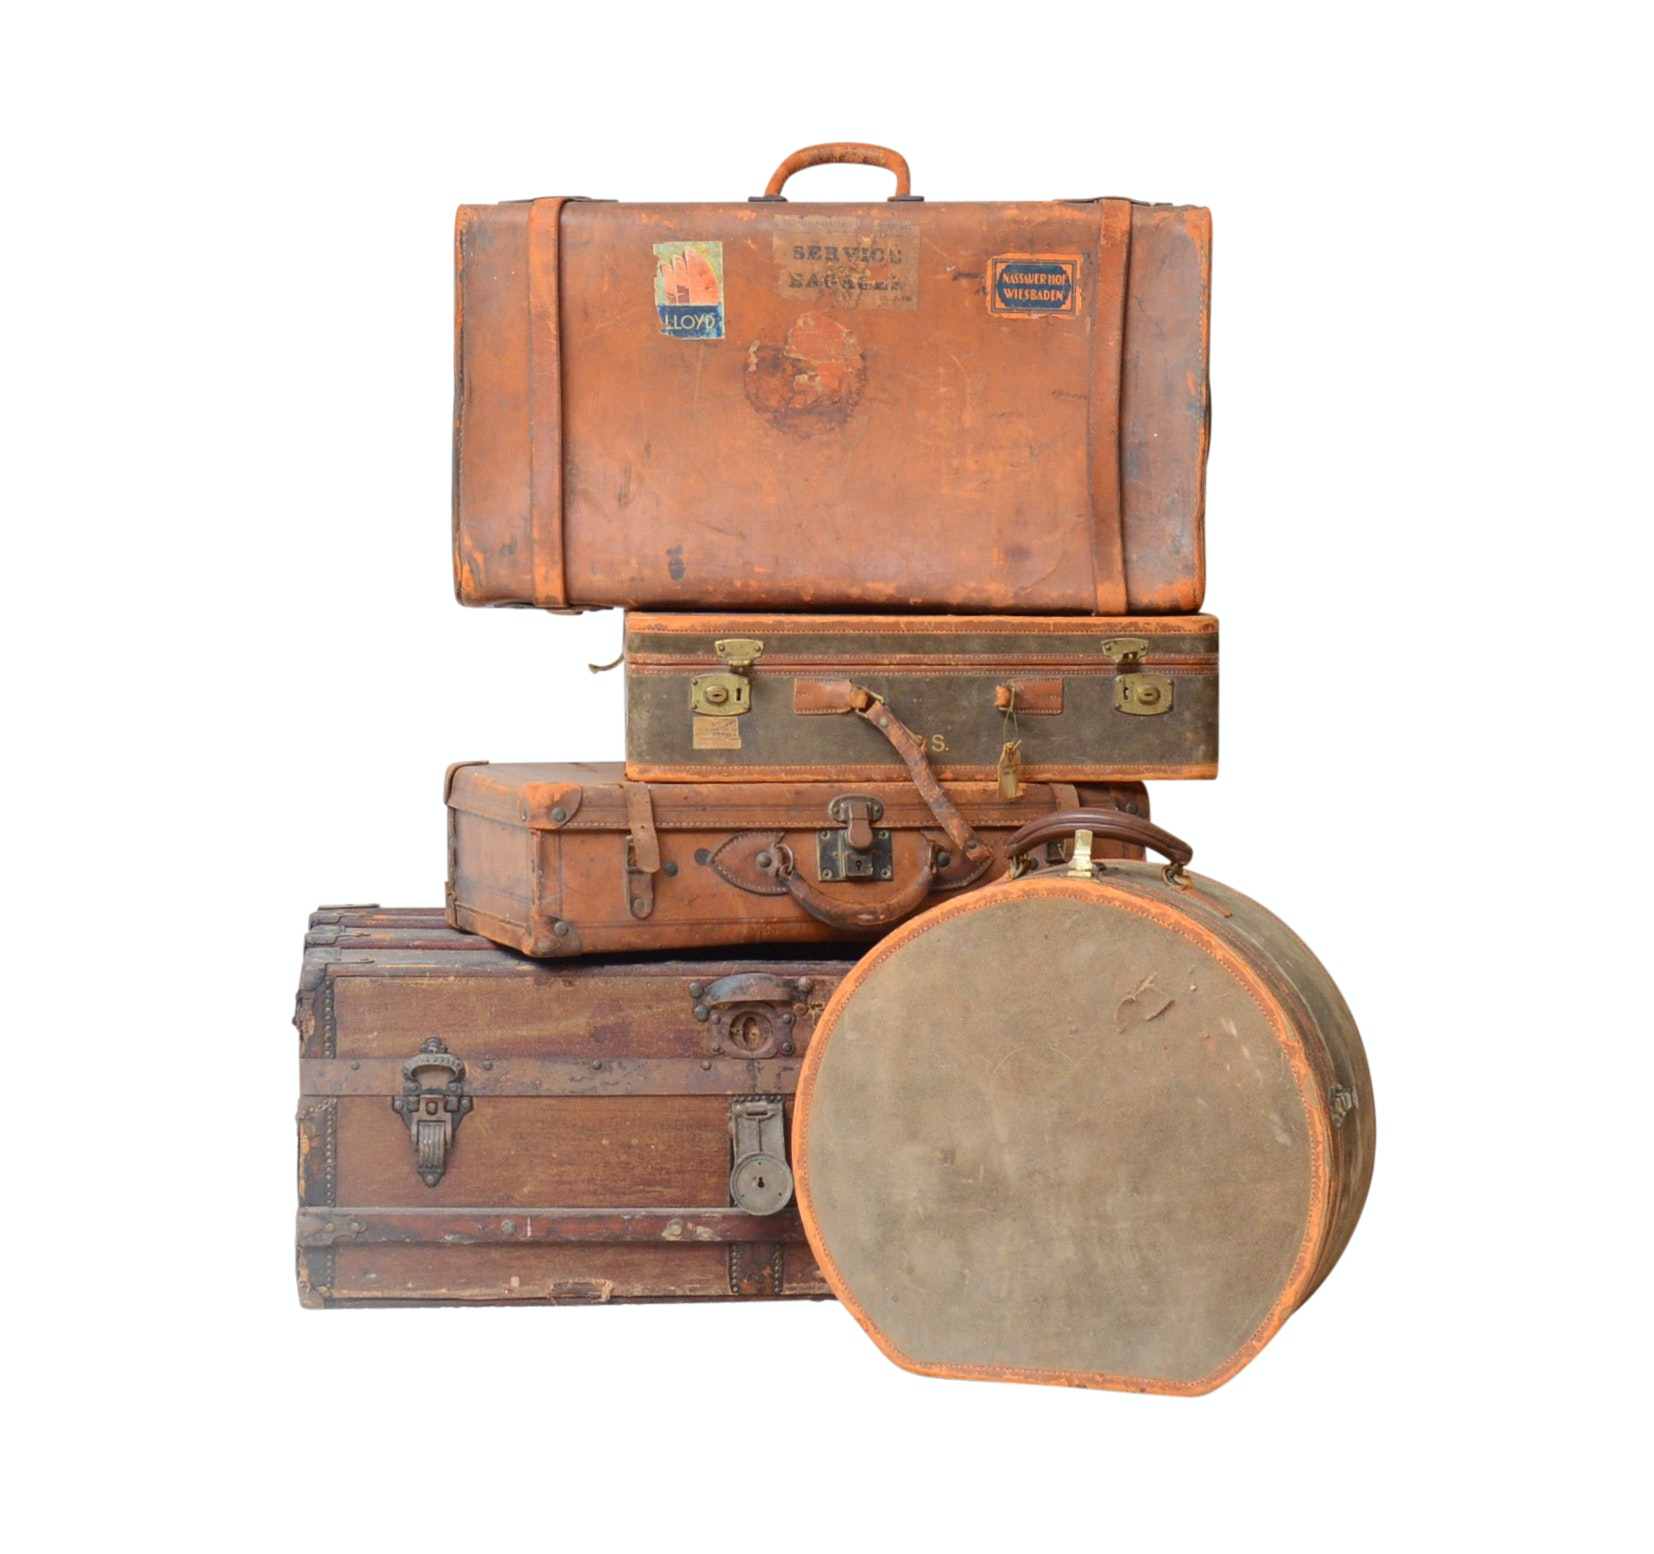 Antique Henry Weissman Travel Trunk and Luggage